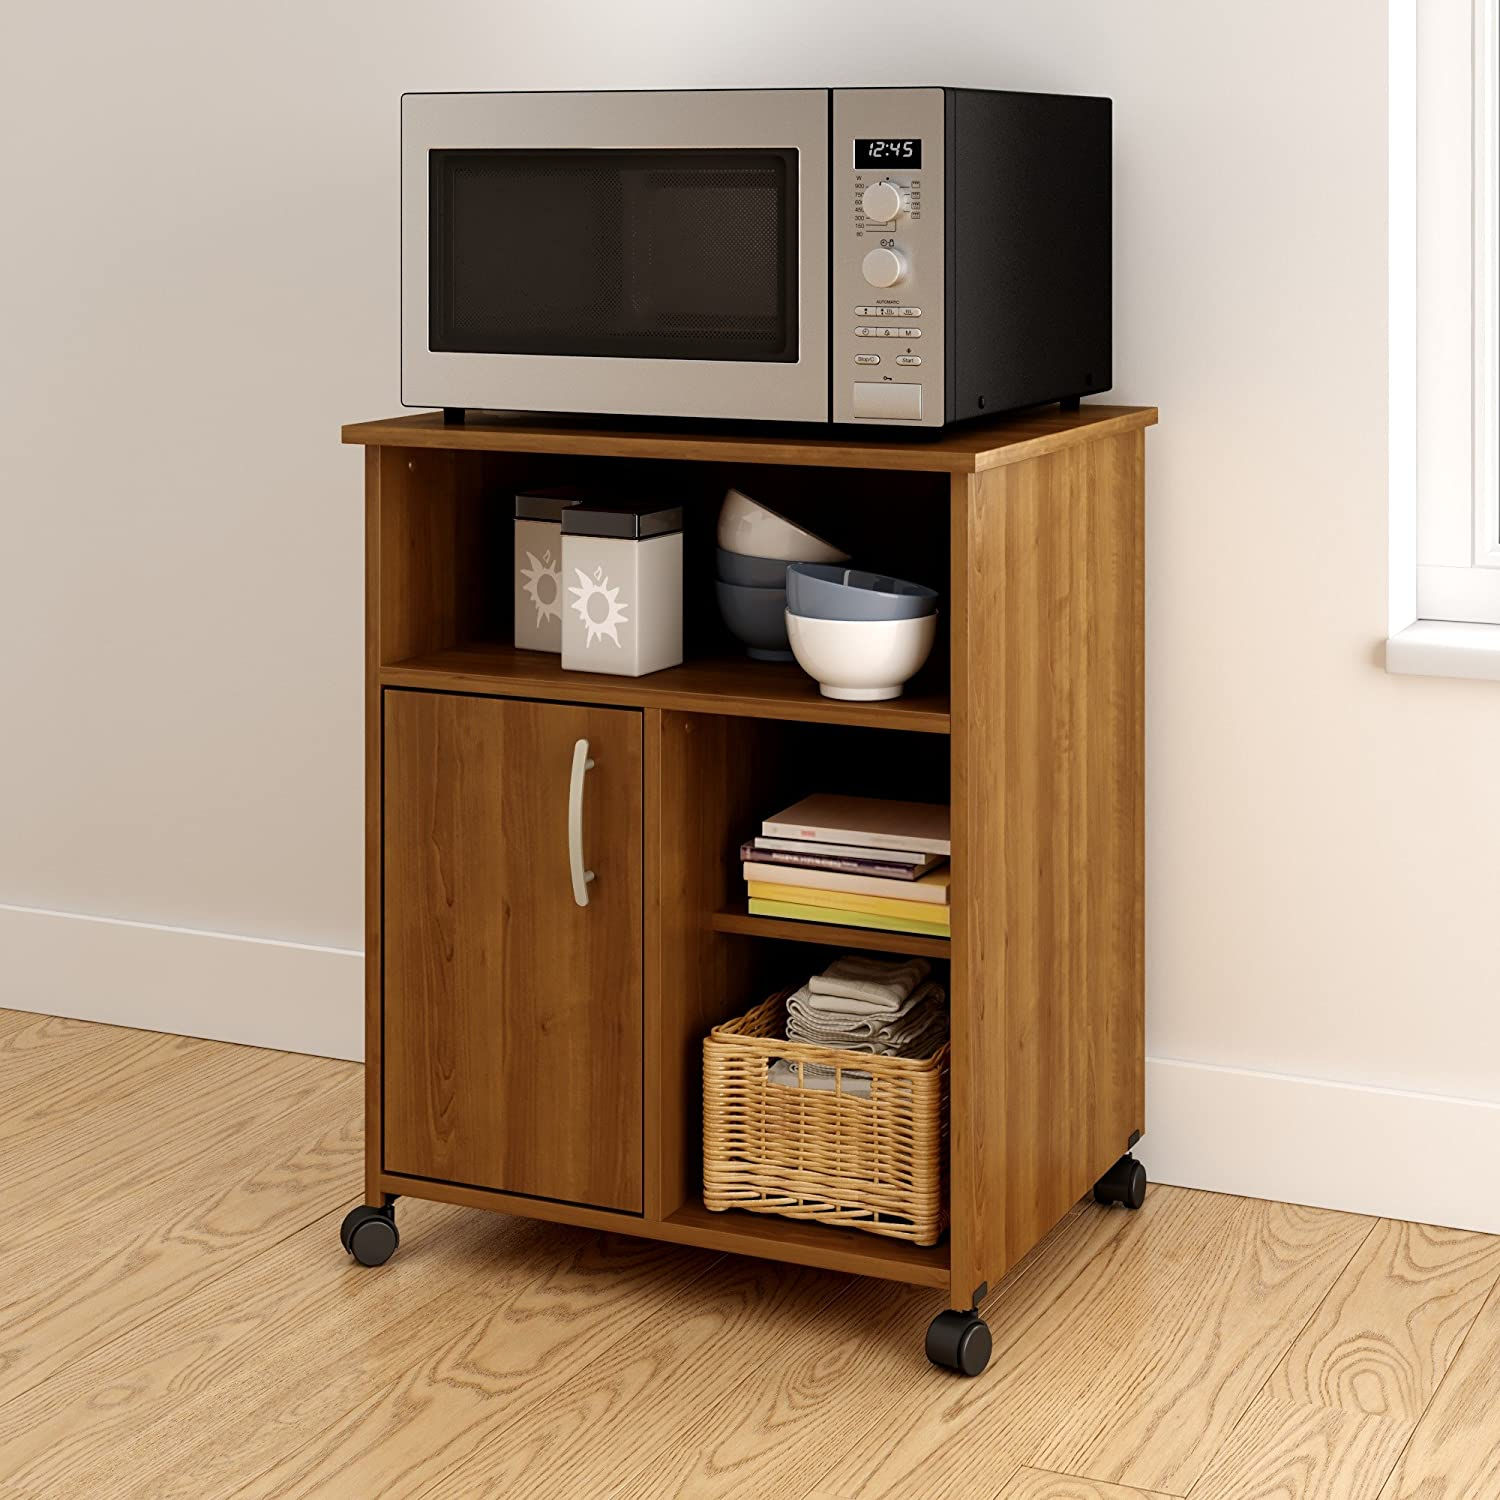 South Shore Axess Microwave Cart with Storage on Wheels, Morgan Cherry